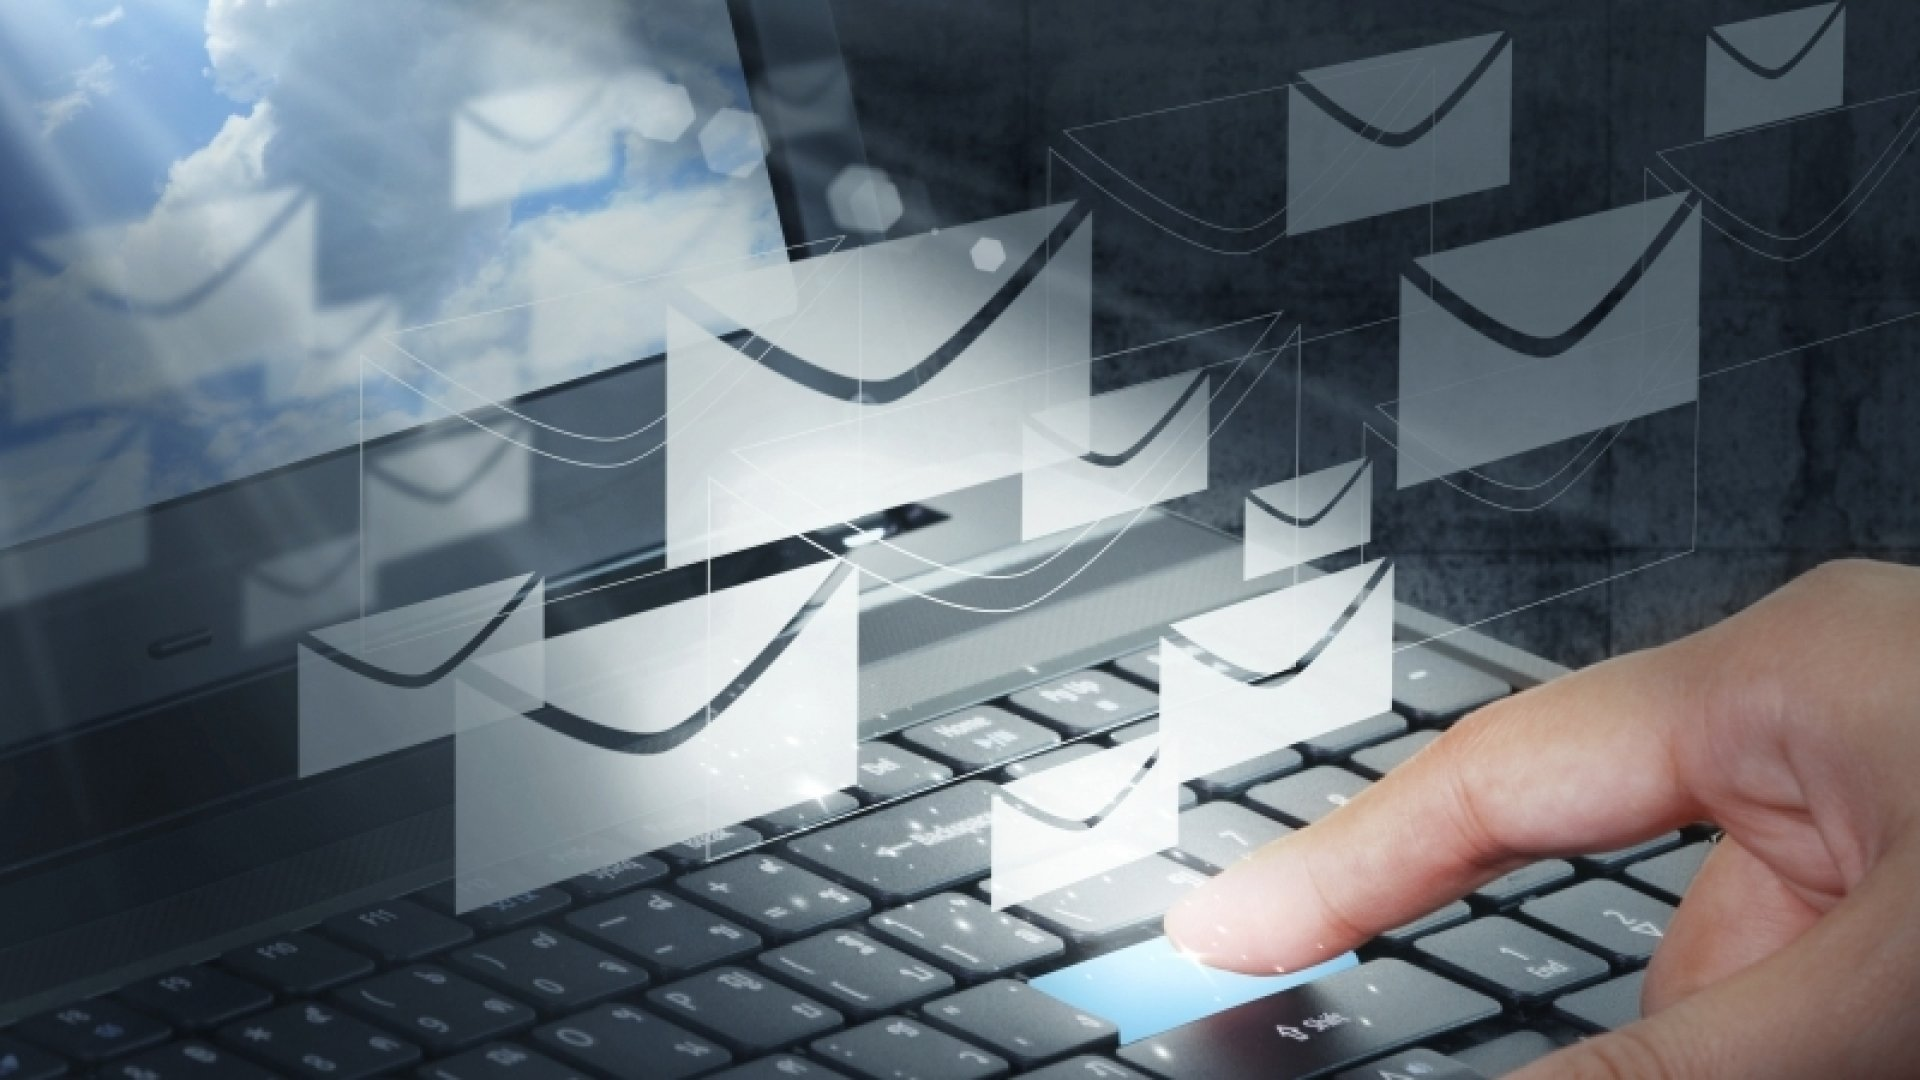 6 Ways to Curb Your Email Habit